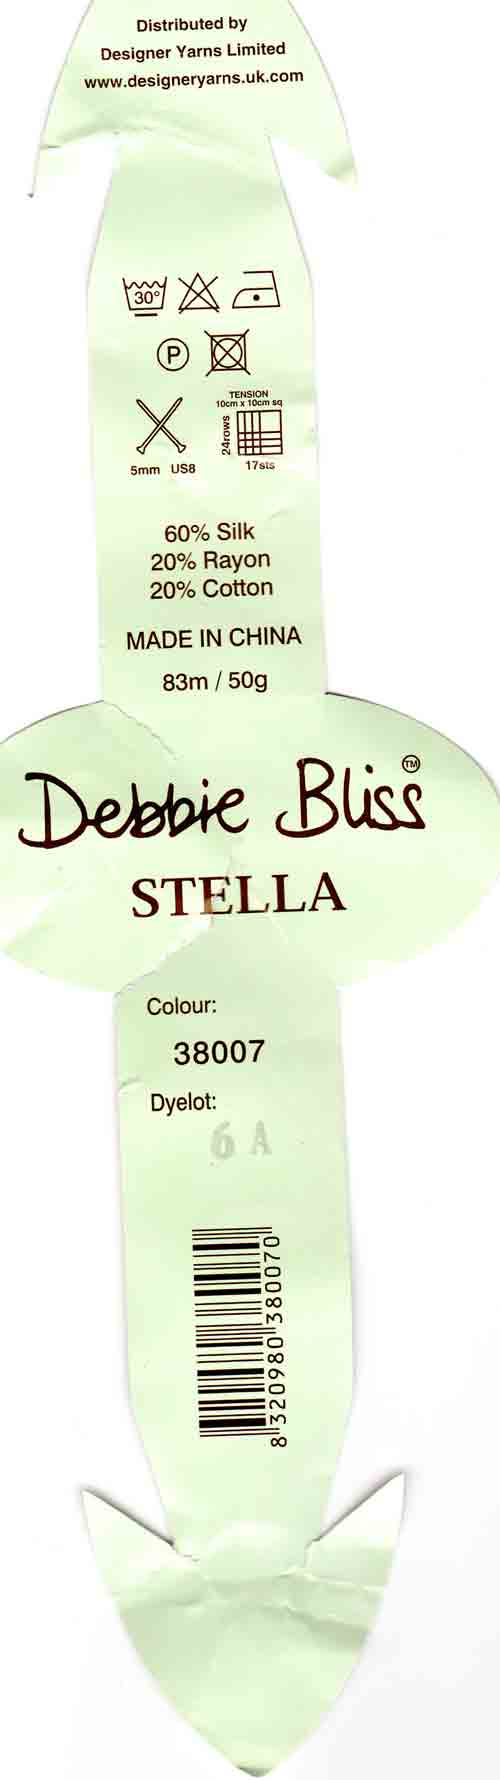 debbie_bliss_label